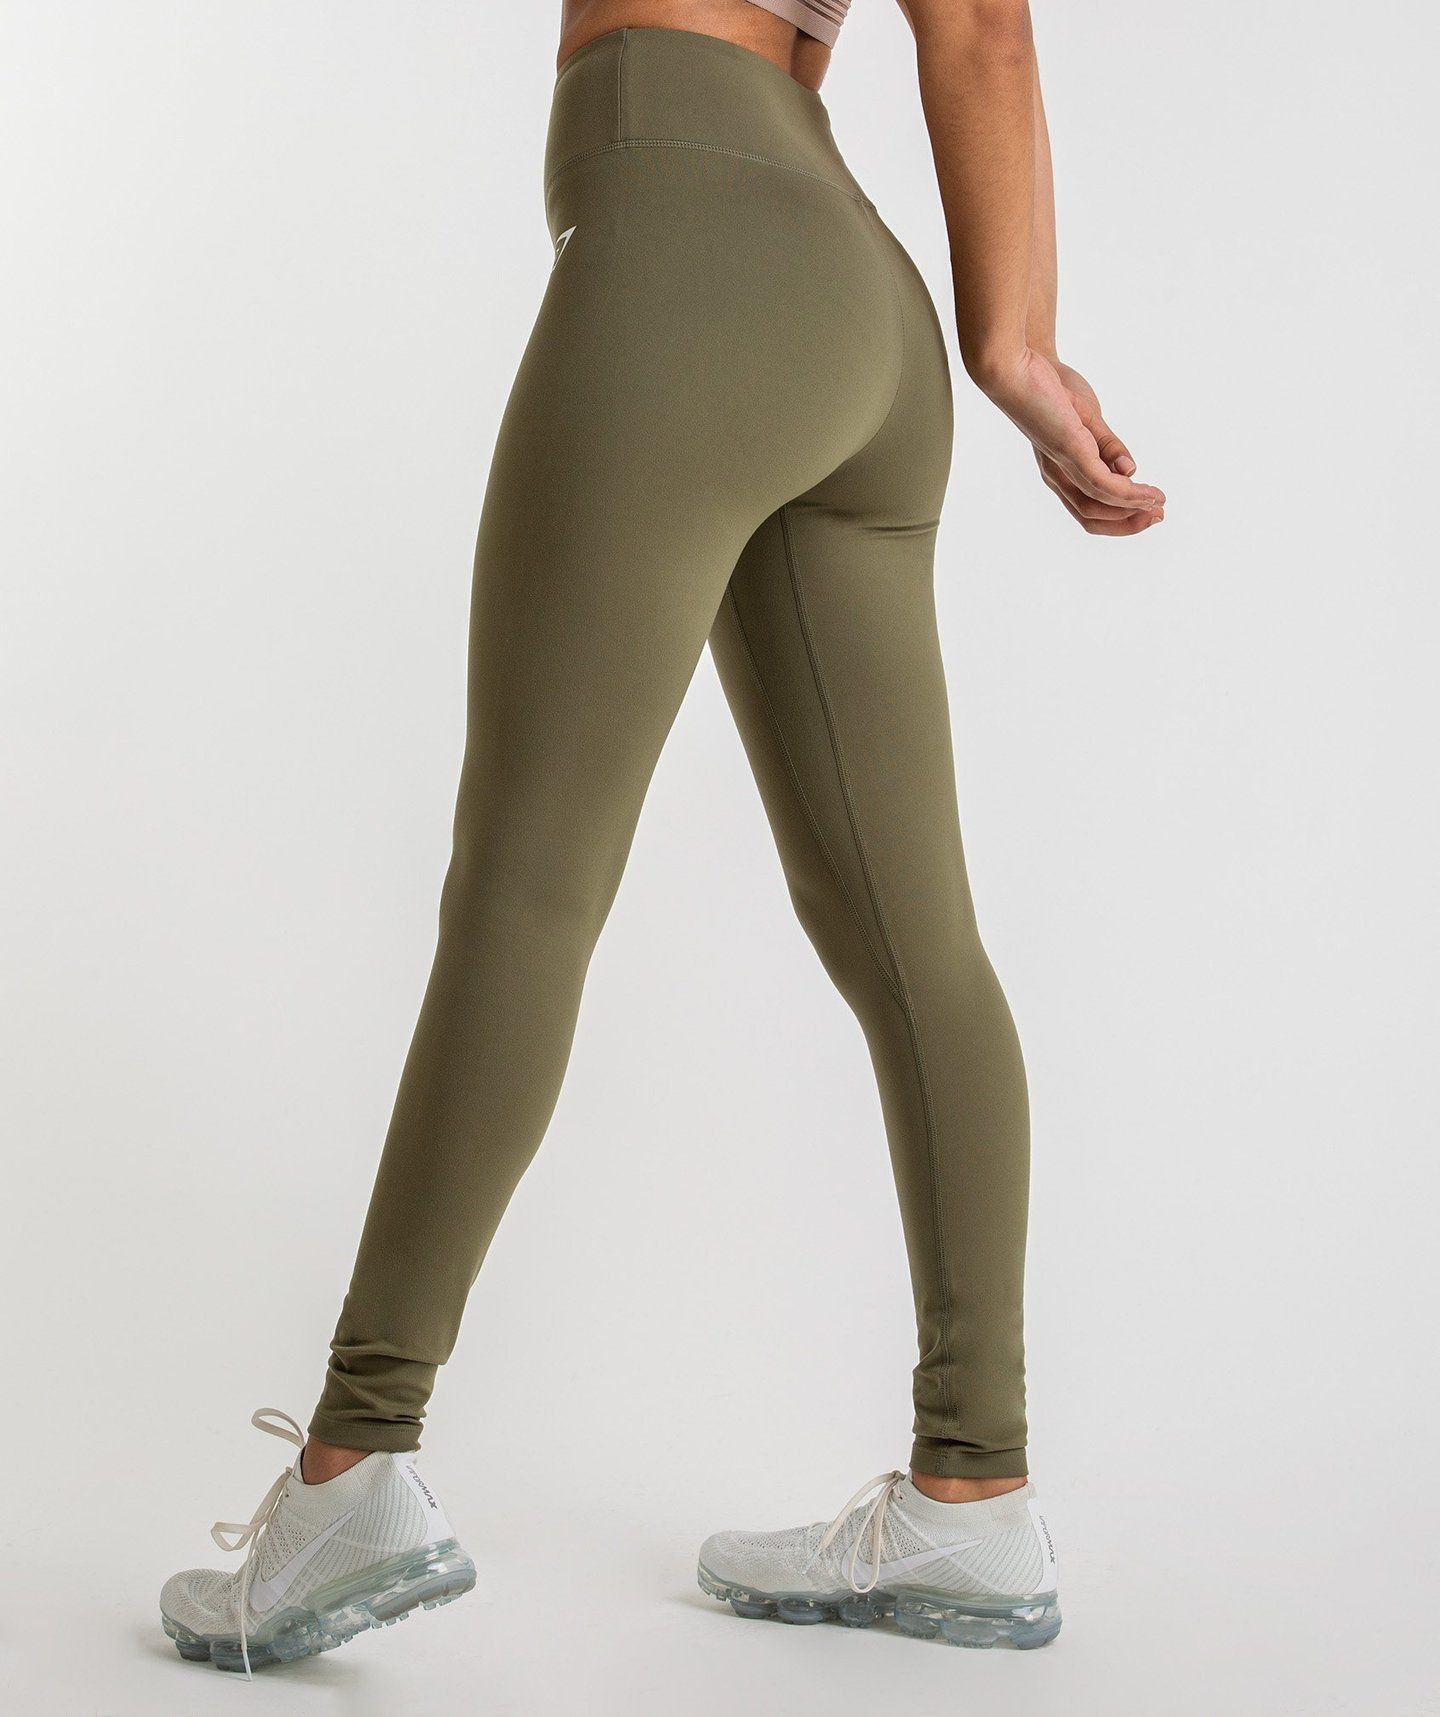 6fb8960e28d0a Gymshark Dreamy Leggings - Khaki 1 | gym shark outfits